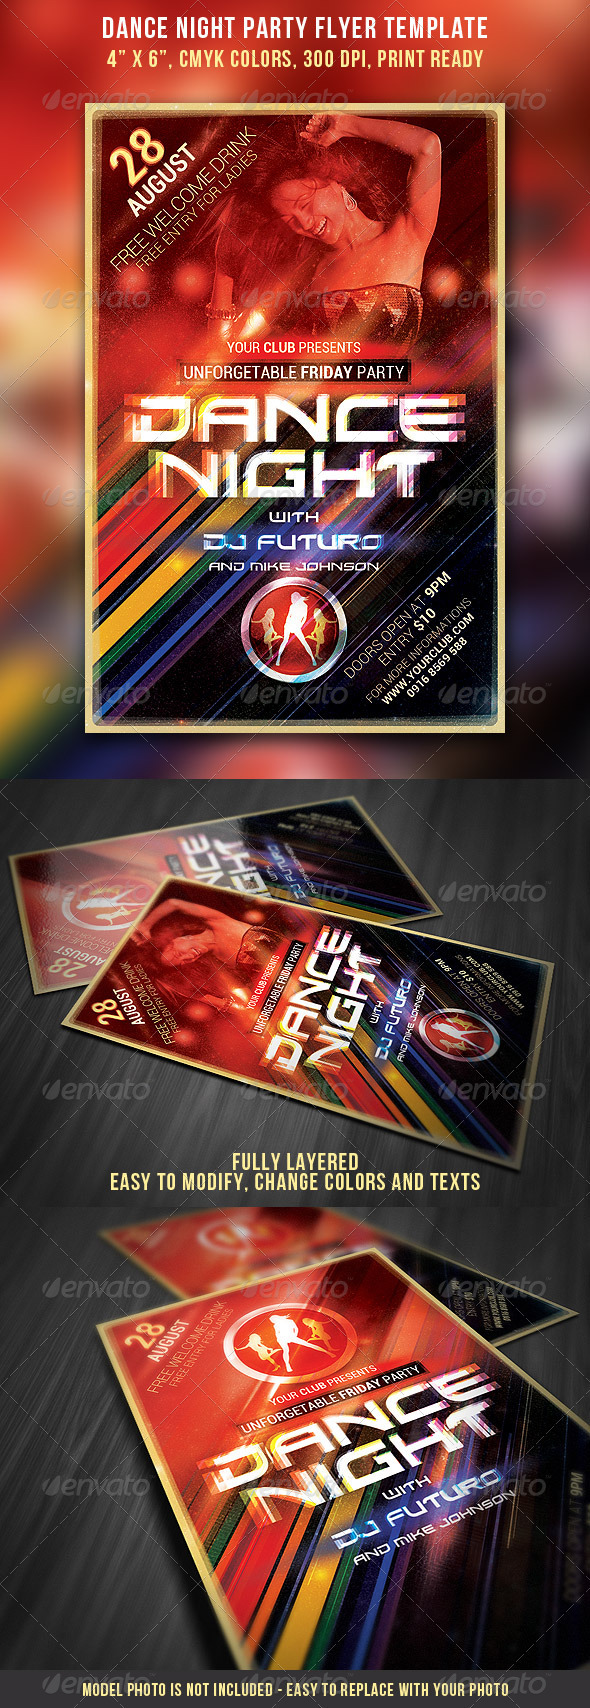 Dance Night Party Flyer Template - Clubs & Parties Events